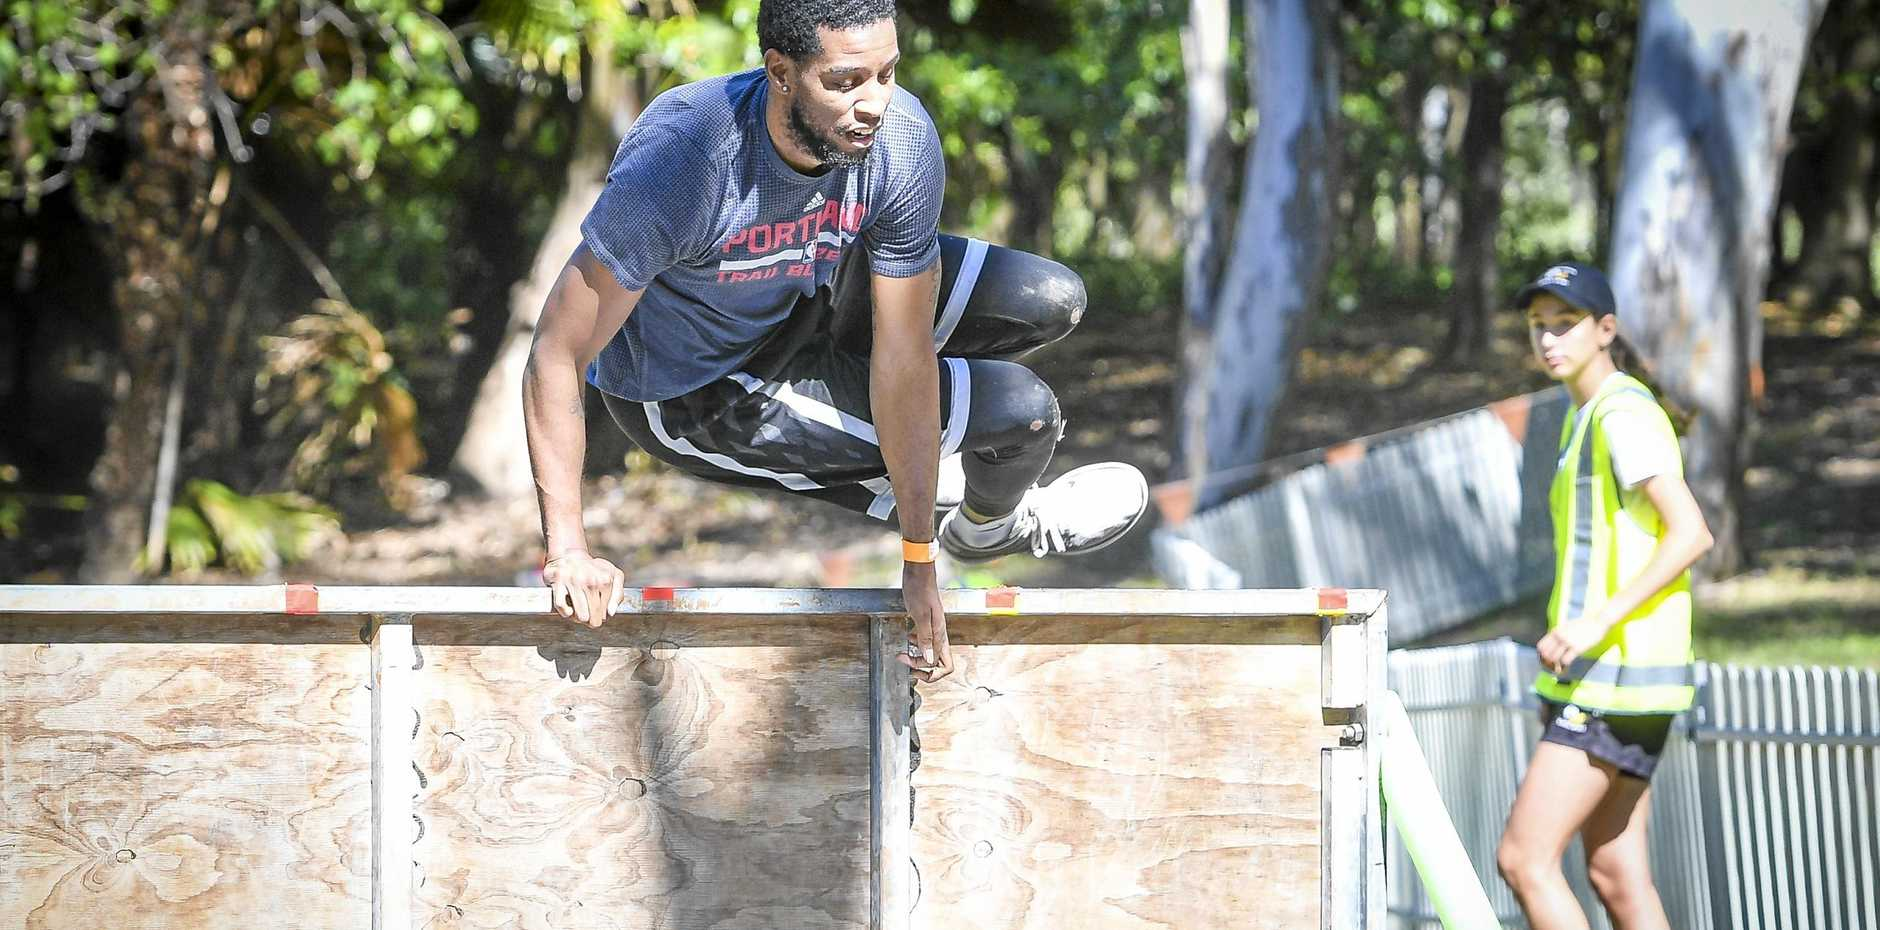 Taylor Young had the height to tackle some of the obstacles.